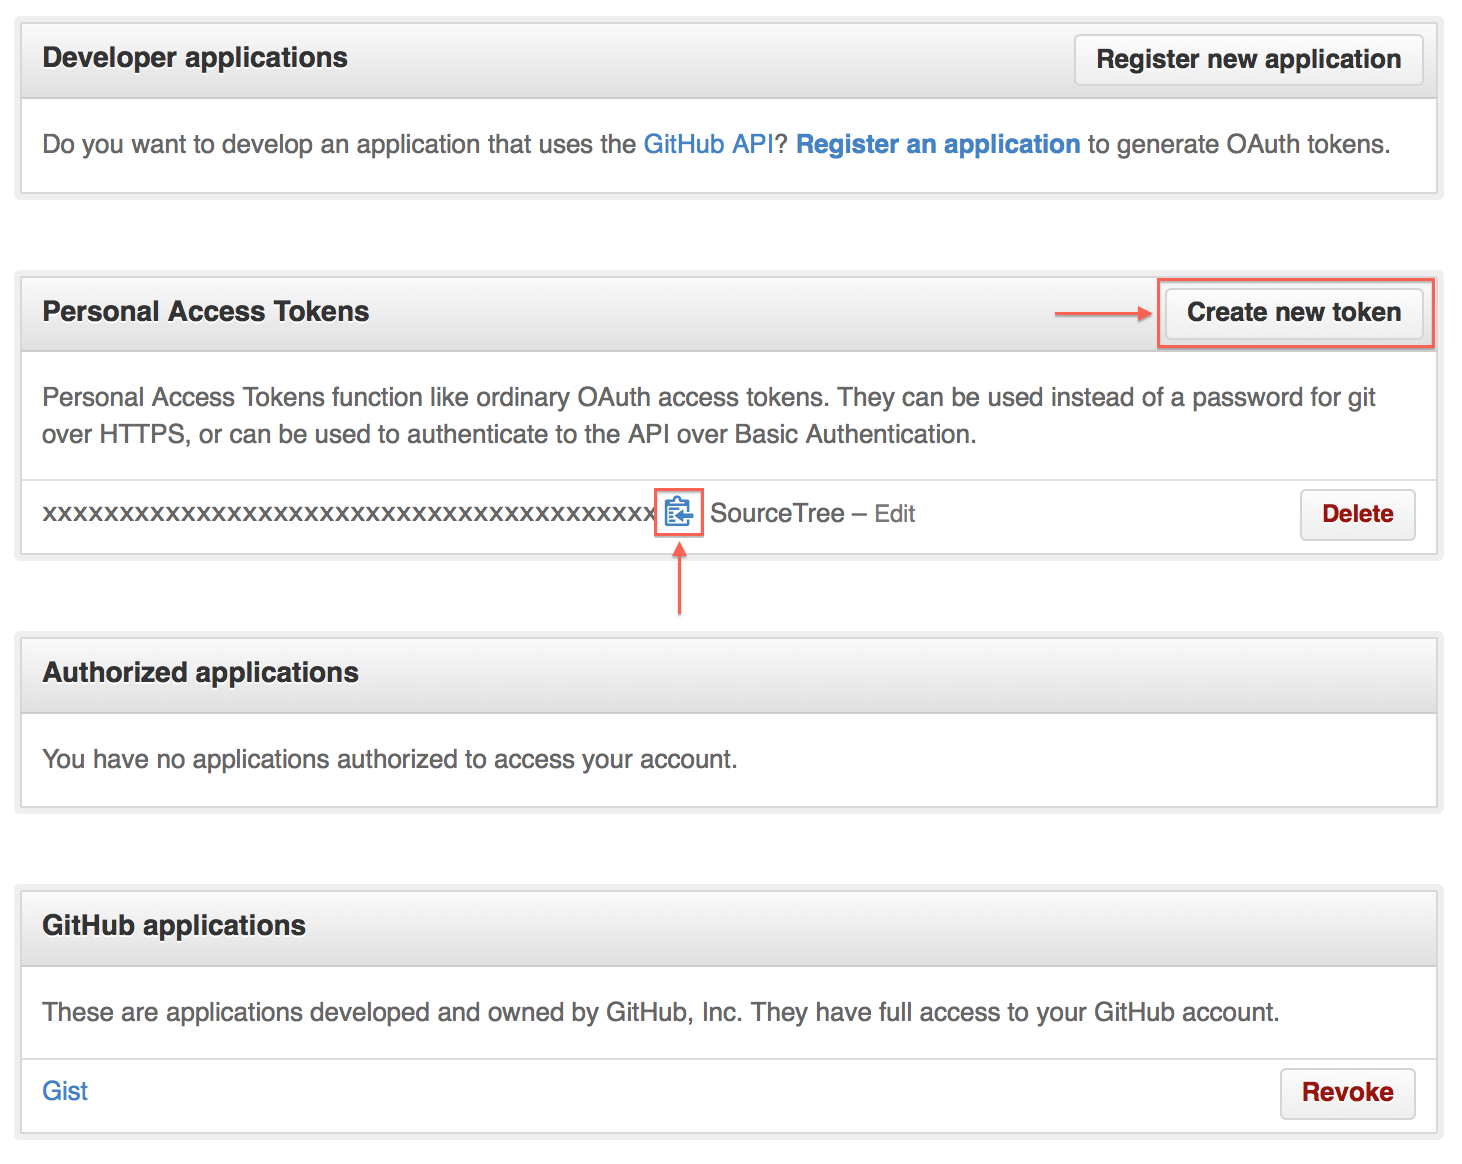 SourceTree / GitHub: Must specify two-factor authentication OTP code